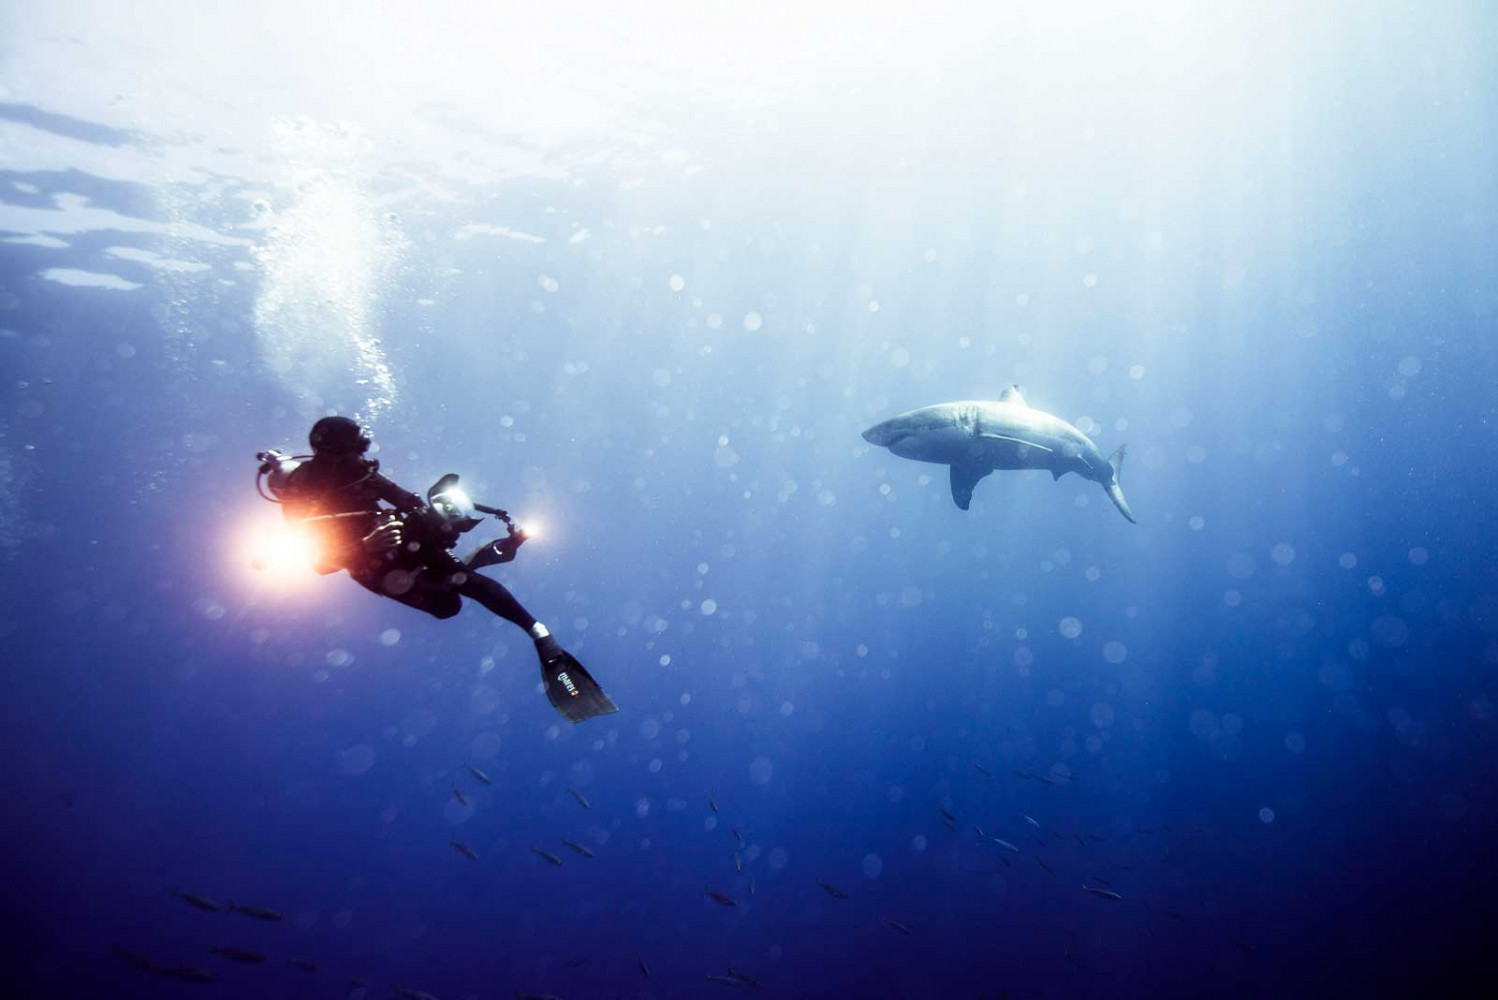 Michael Muller photographing sharks in the wild